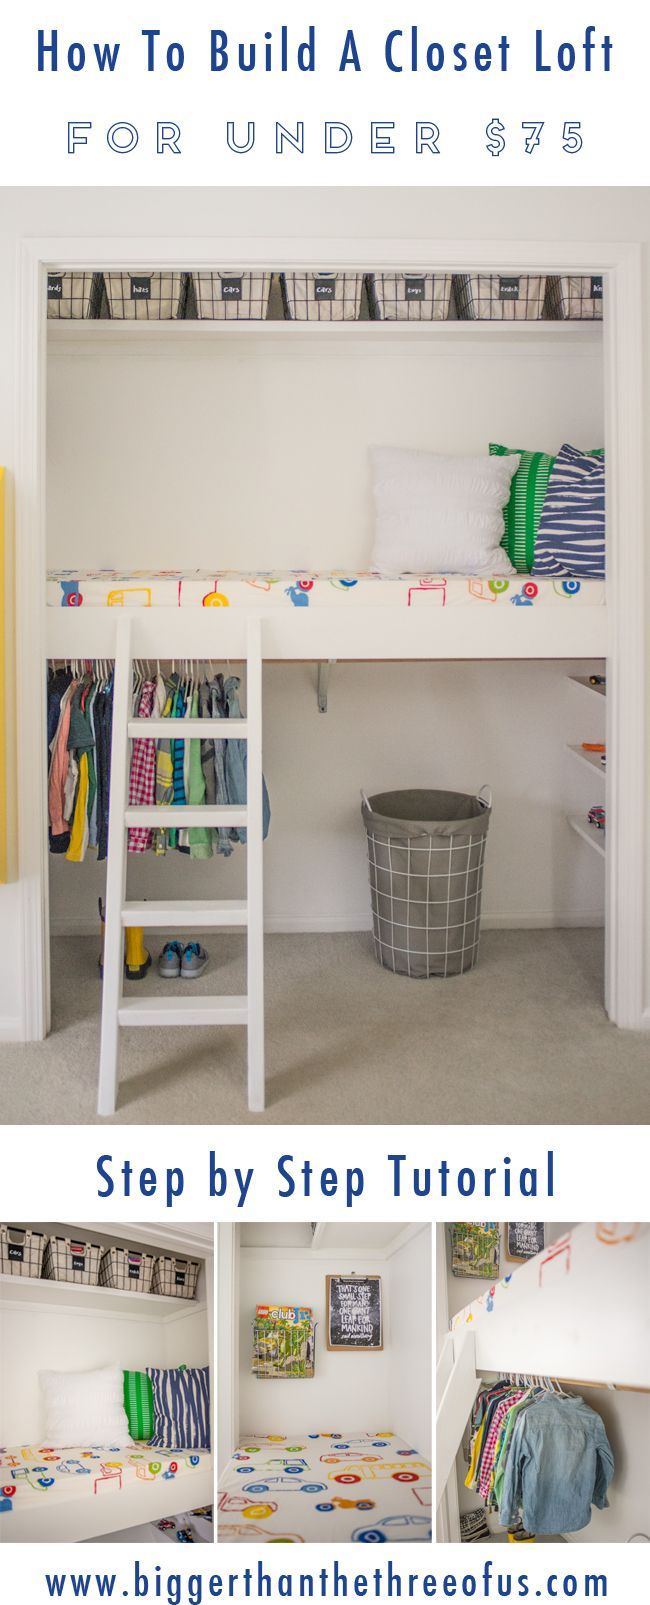 This Step-by-Step tutorial will show you how to build a Closet Loft for Under $75! It's a great place for climbing, reading & just to hangout! #loft #howto